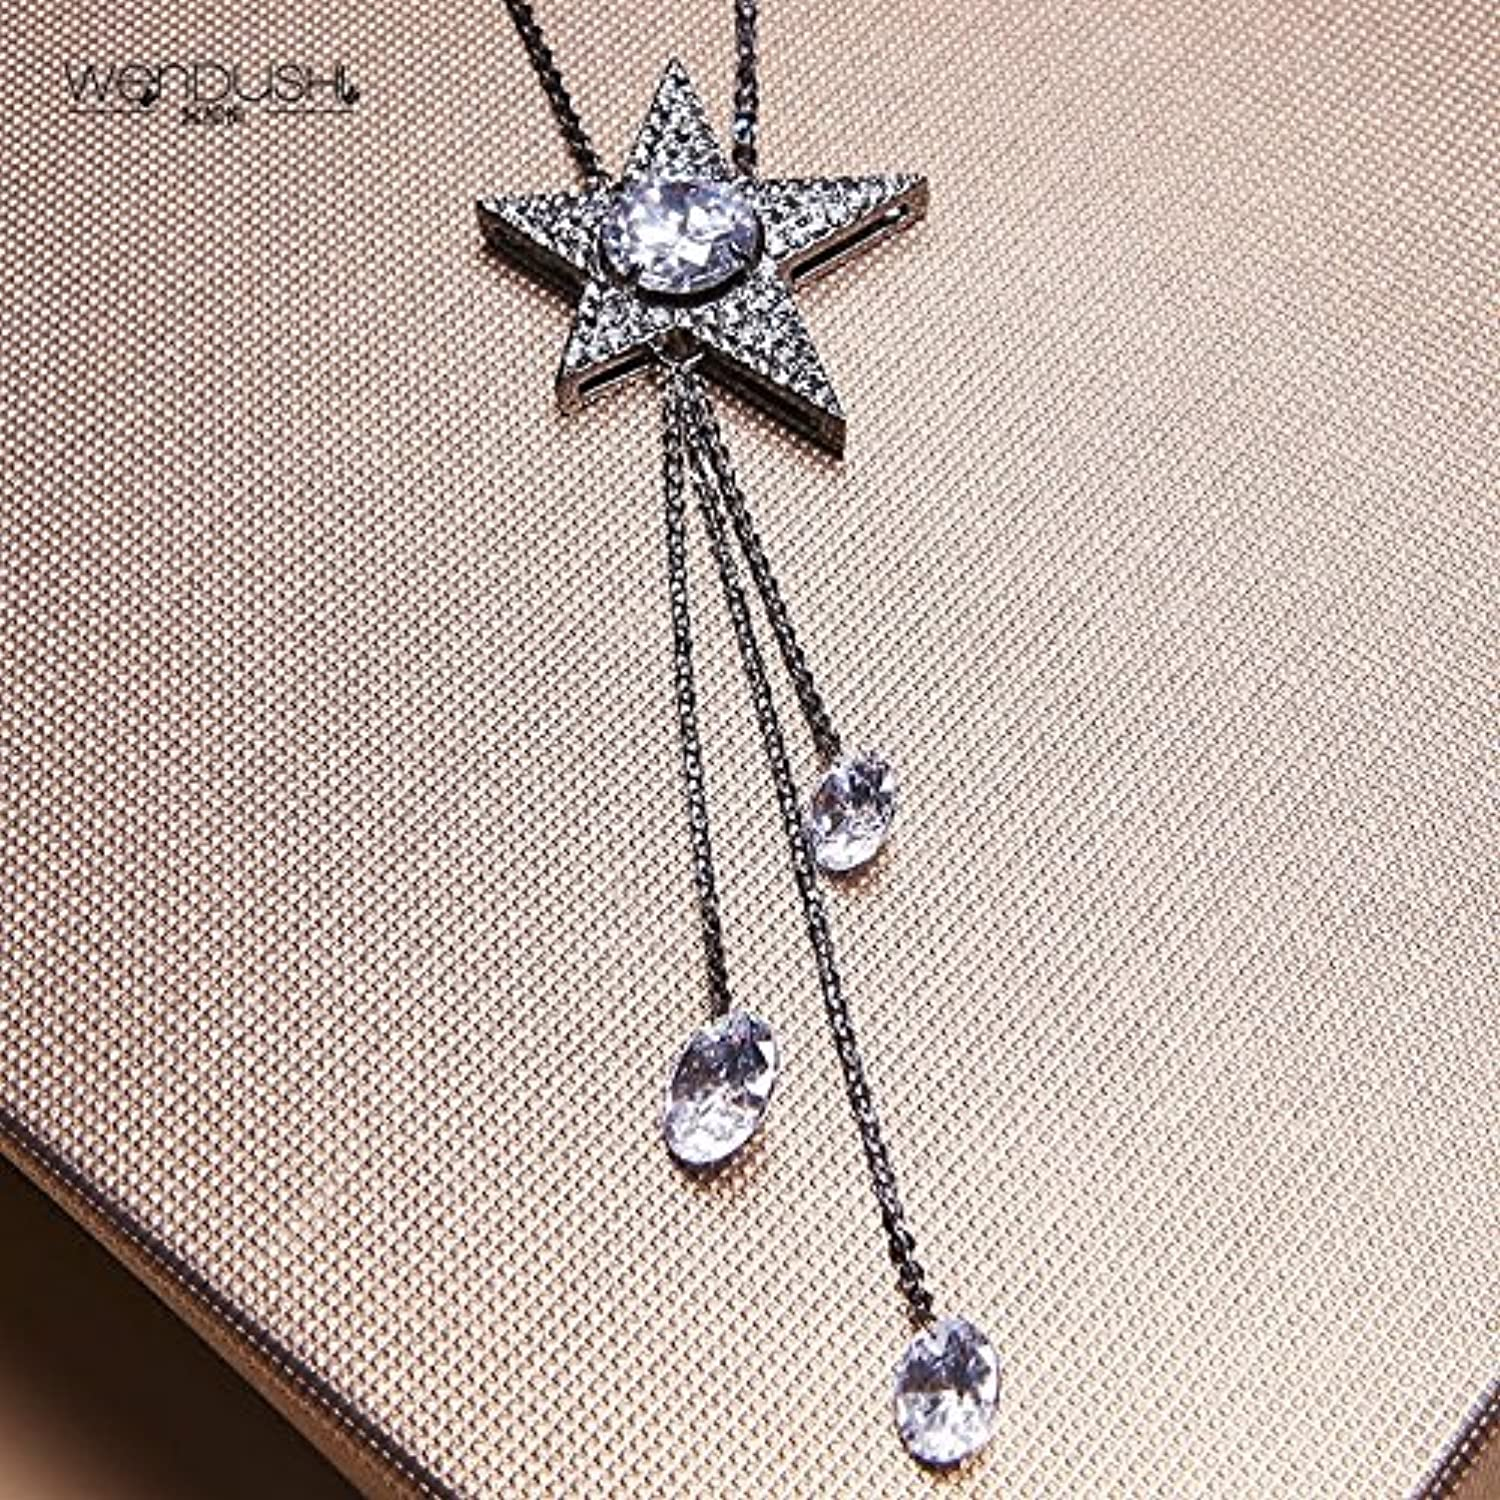 Hot Decorated with Exquisite Diamond Star Necklace Pendant Zircon Long Sweater Chain Women Girls Fashion Black Plating